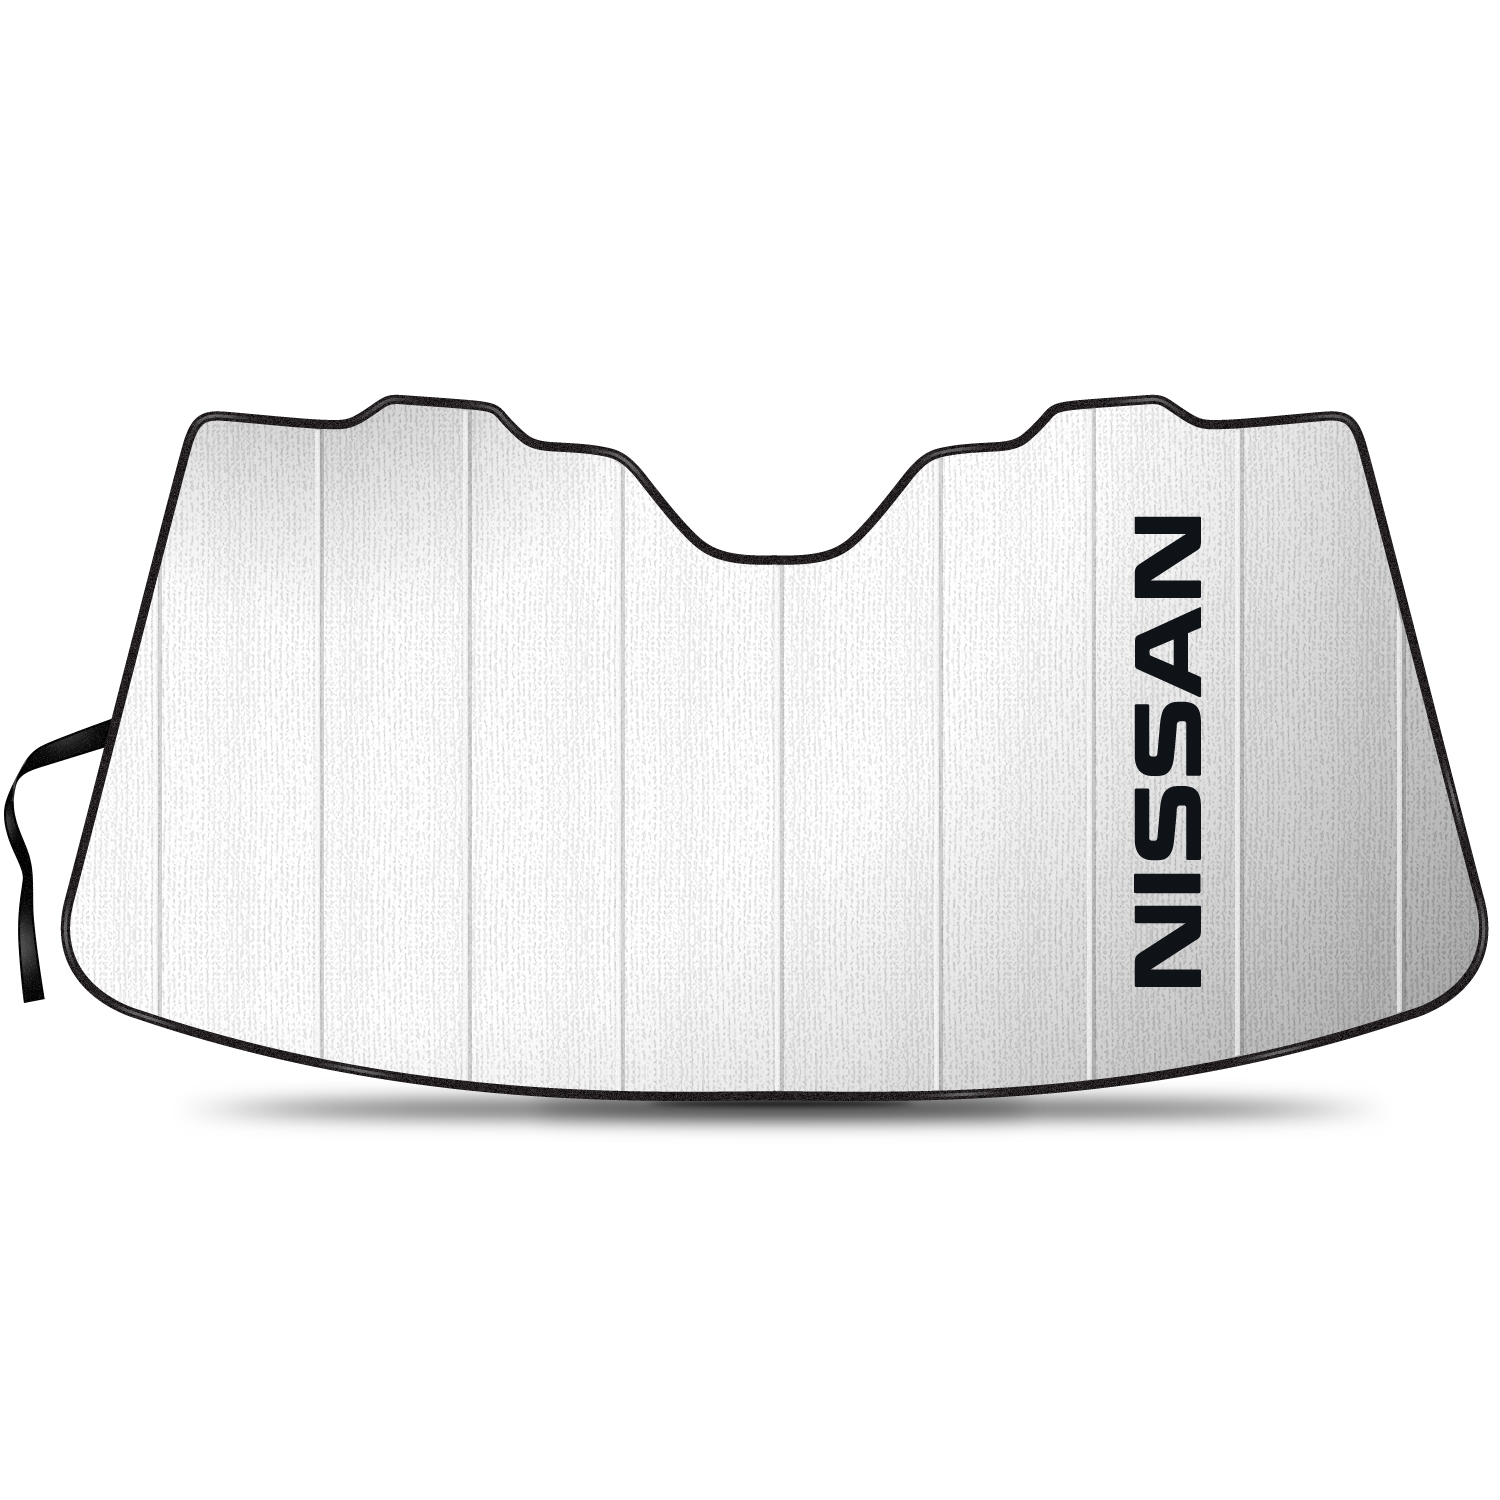 Nissan Large Size Stand Up Universal Fit Auto Windshield Sun Shade